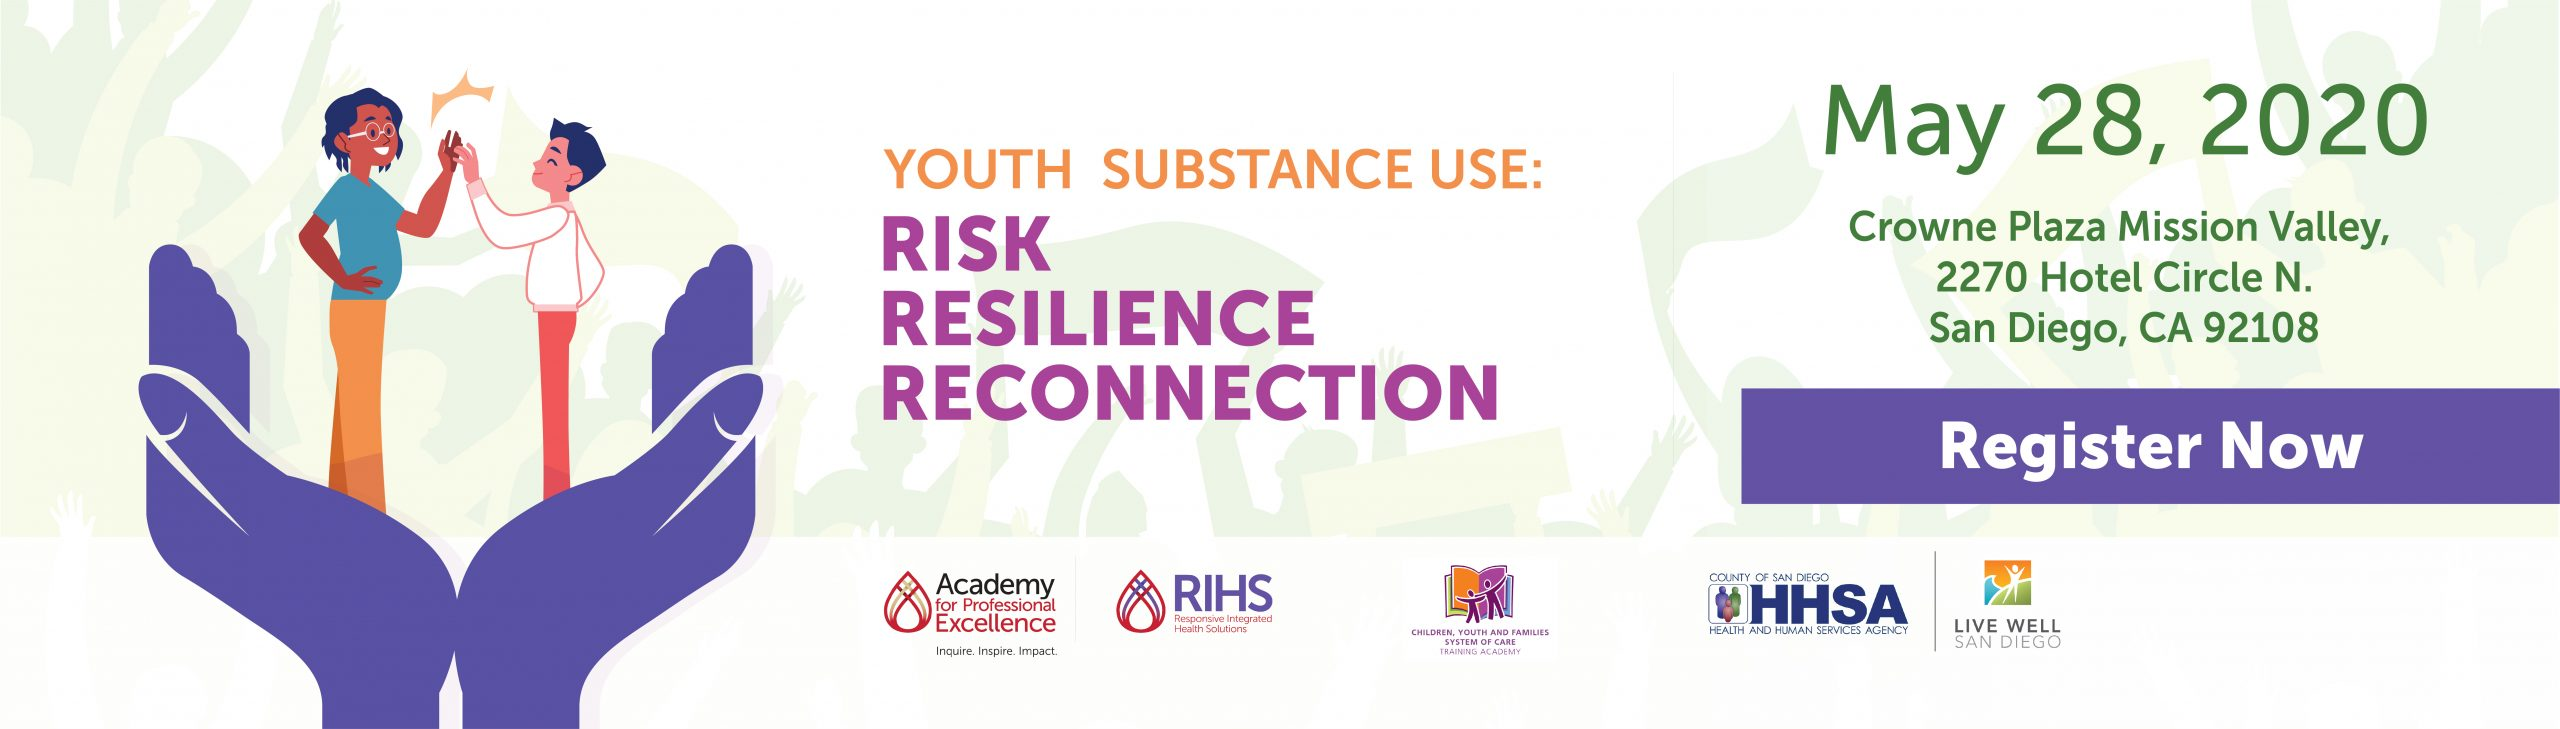 Youth substance use risk flyer